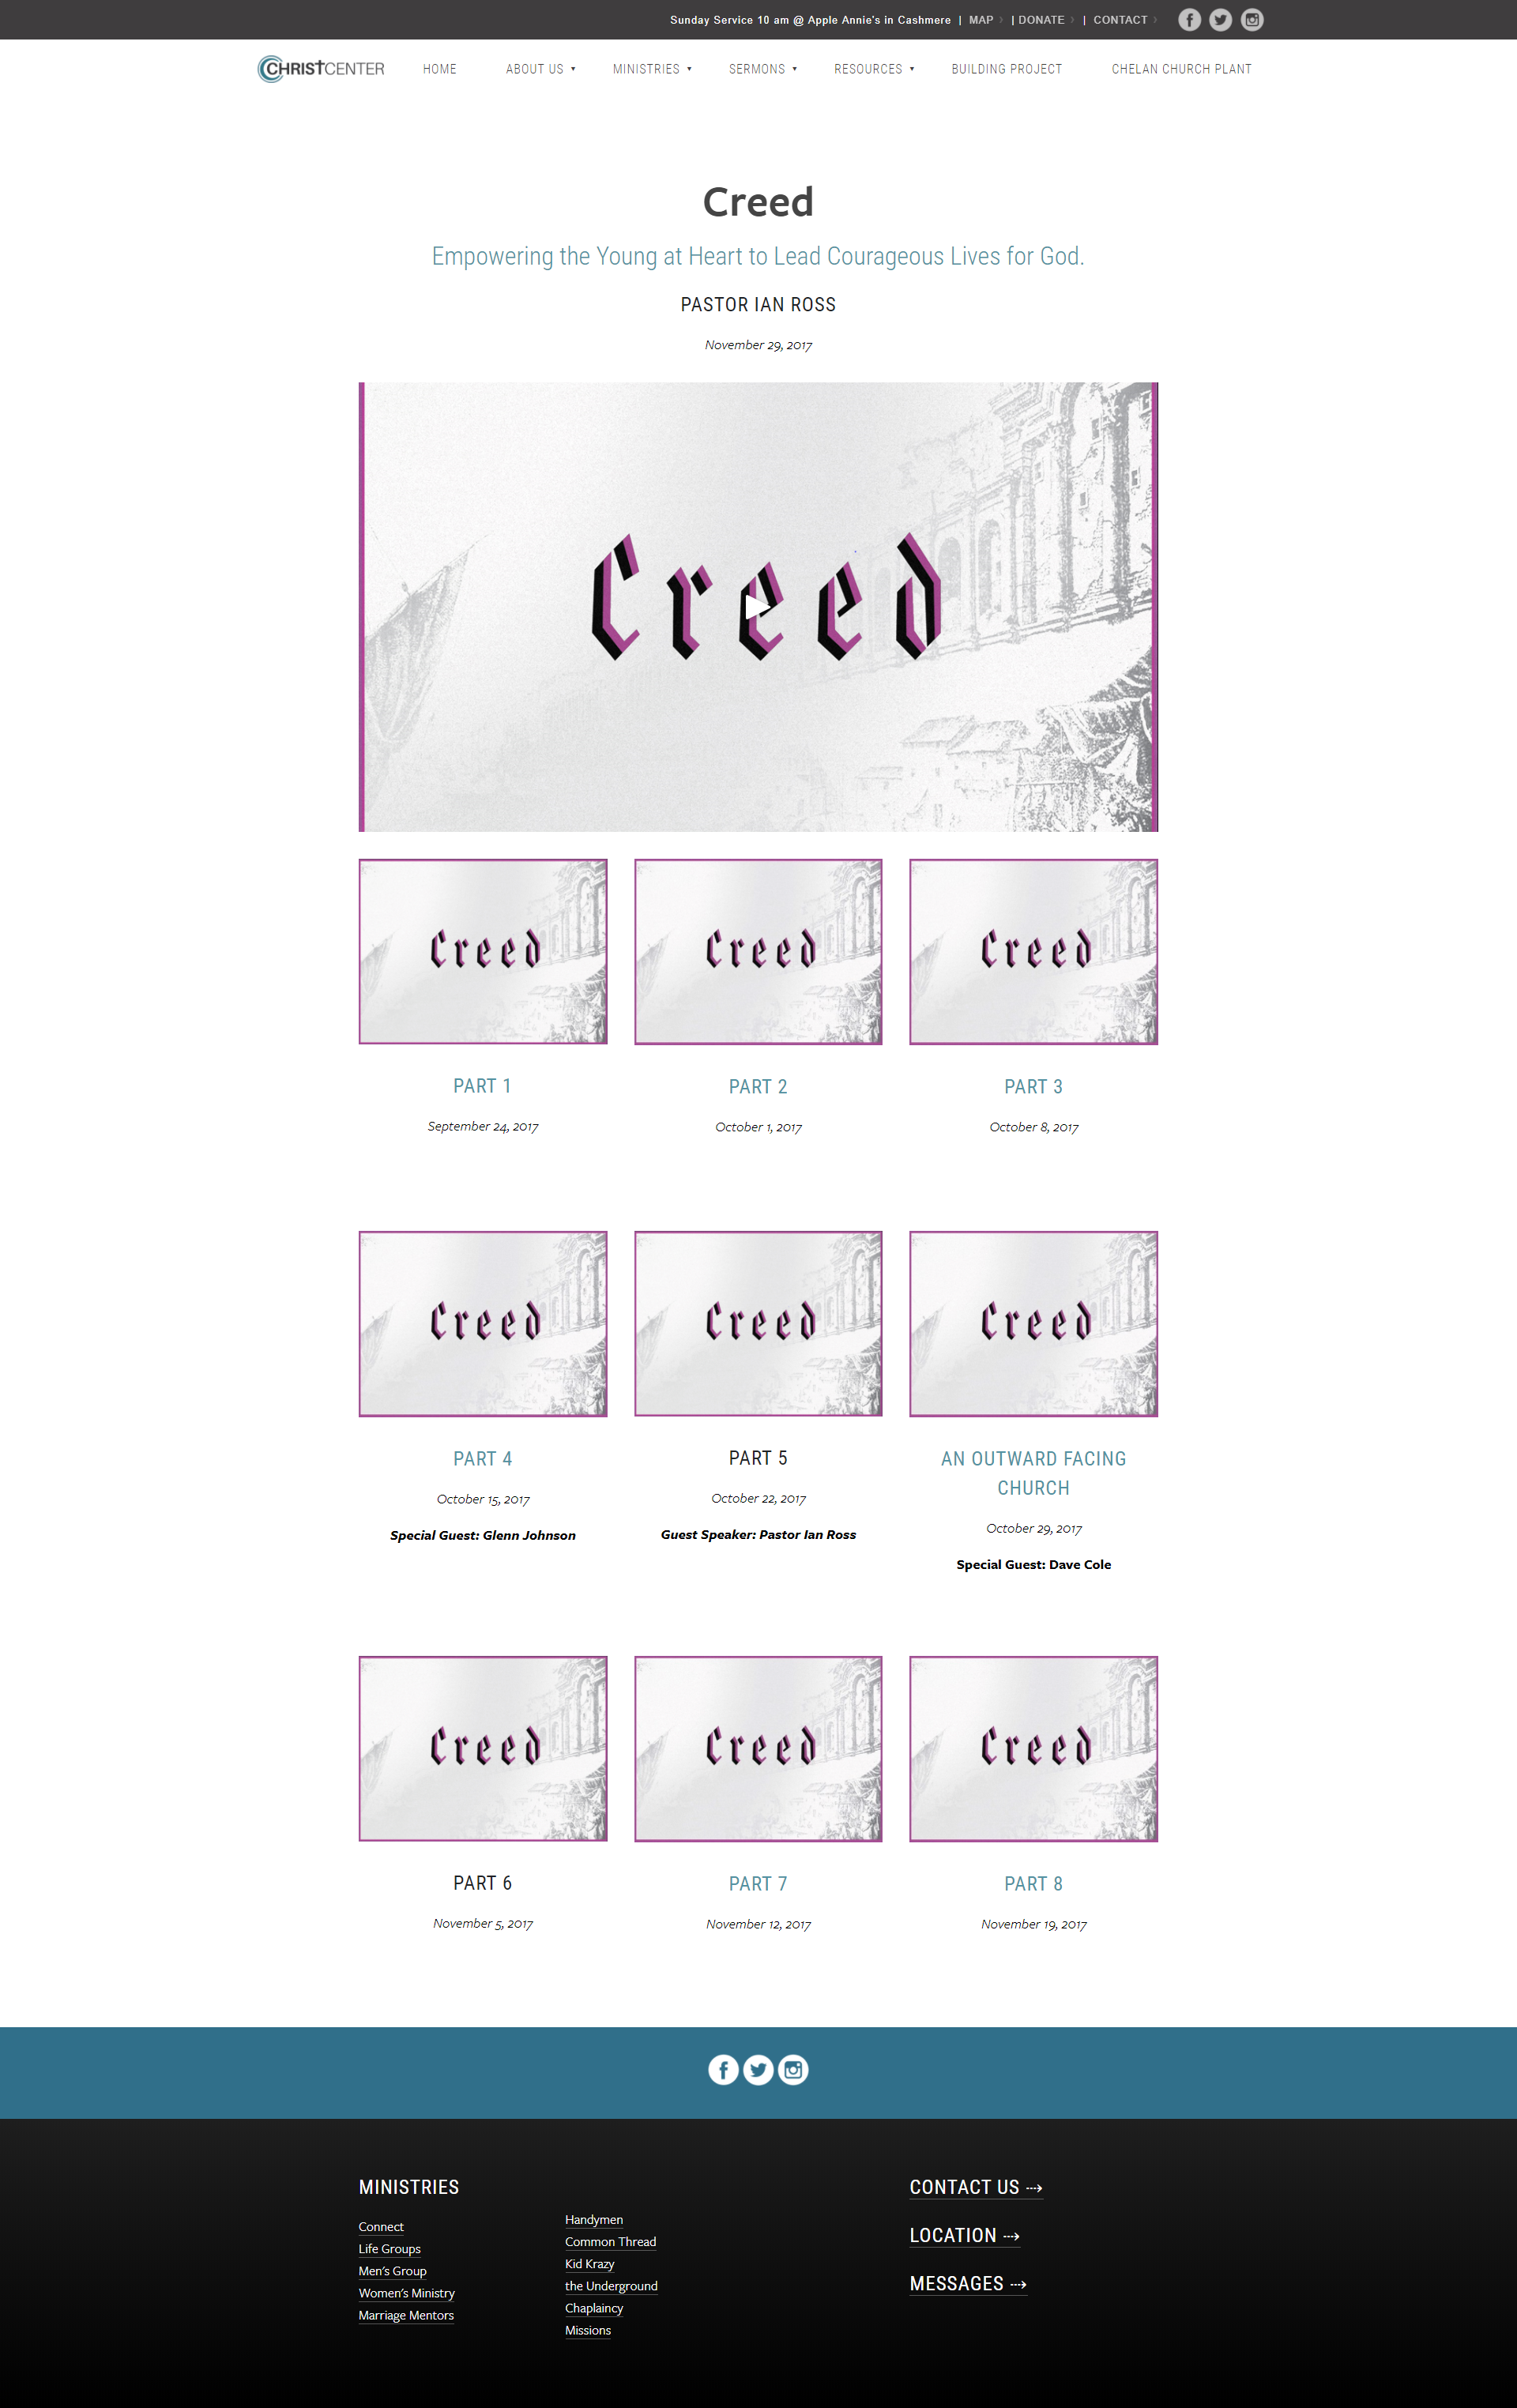 screencapture-christcentercashmere-creed-1518893198918.png